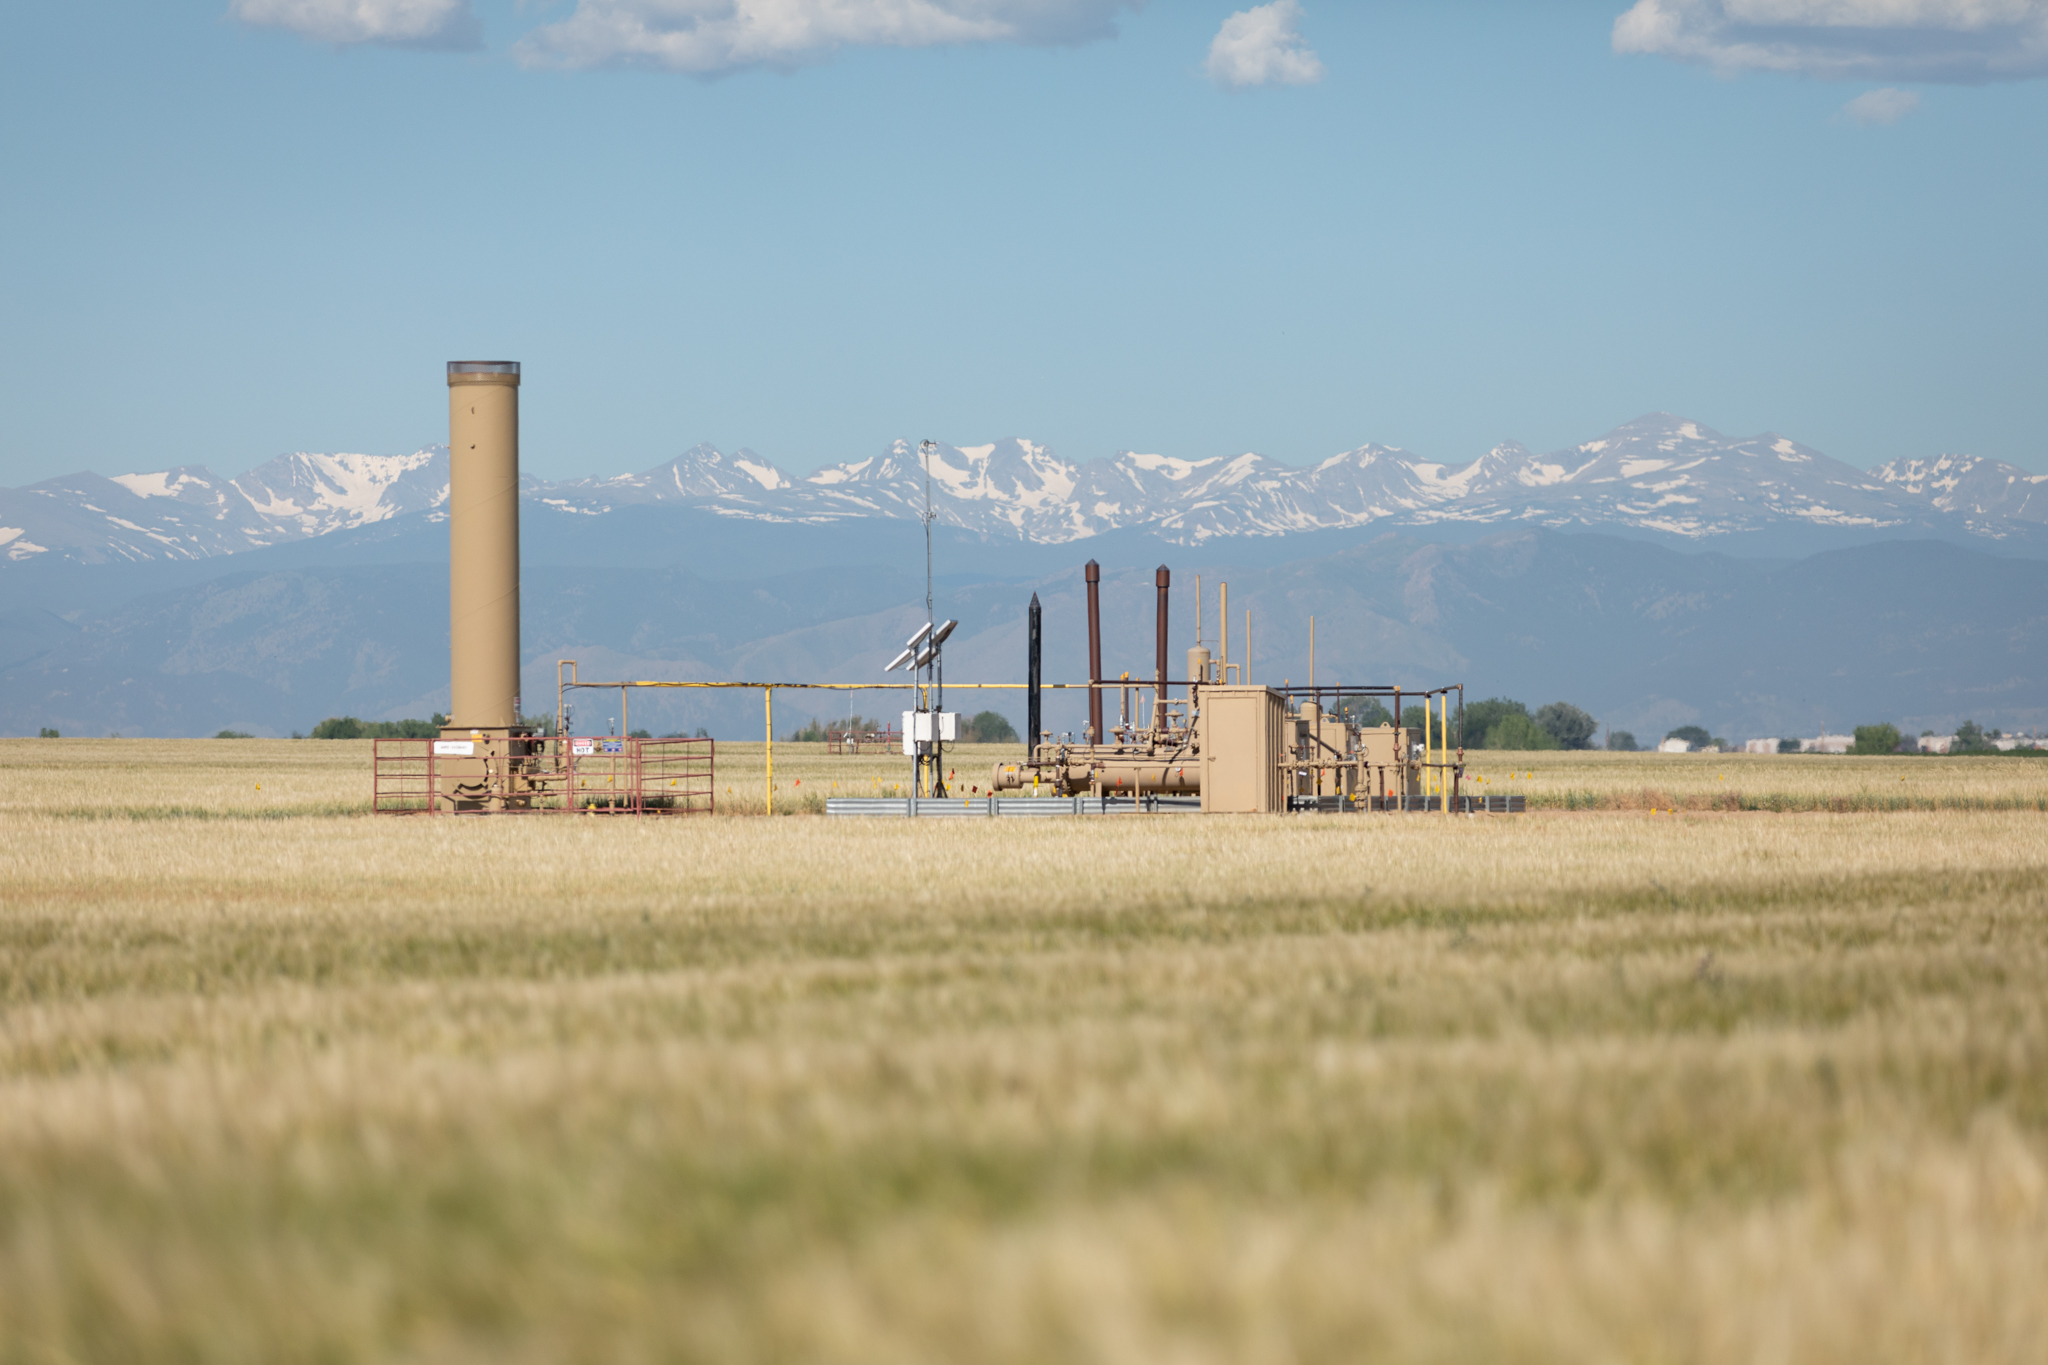 After historic zero-carbon pledge, Platte River Power Authority leaves door open to natural gas